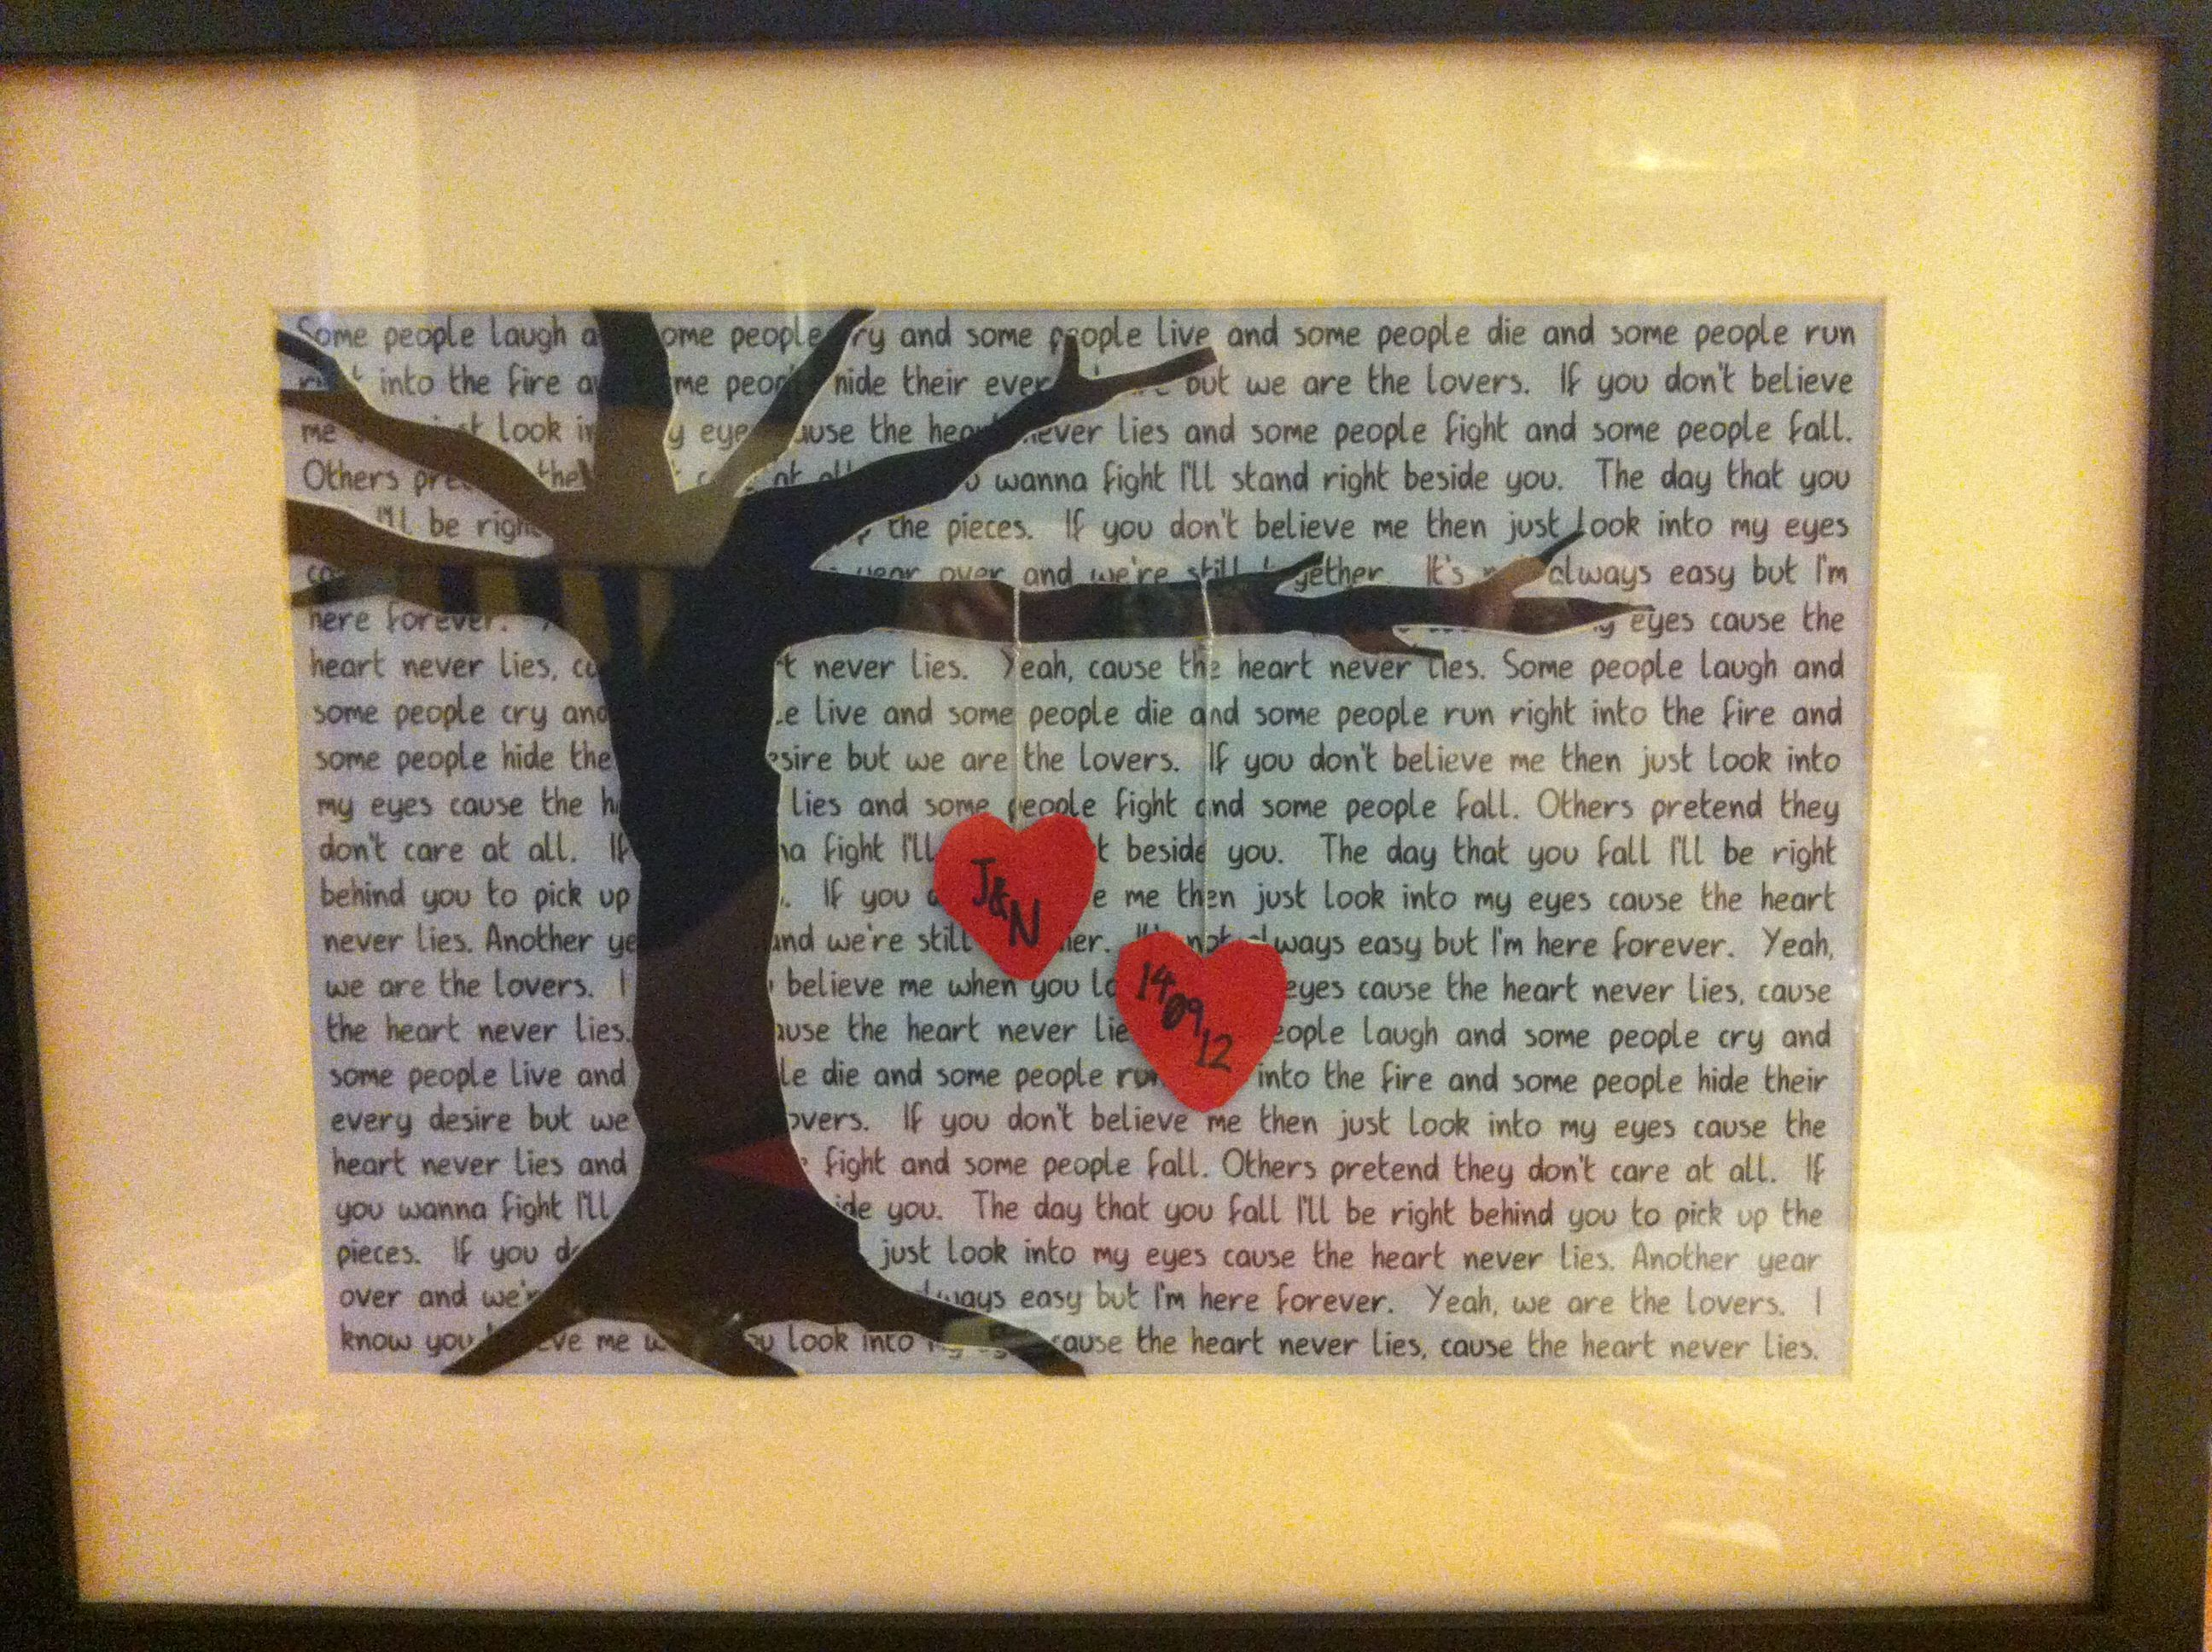 Wedding Gifts Homemade: Lyrics To Their First Dance Behind & Their Initials And